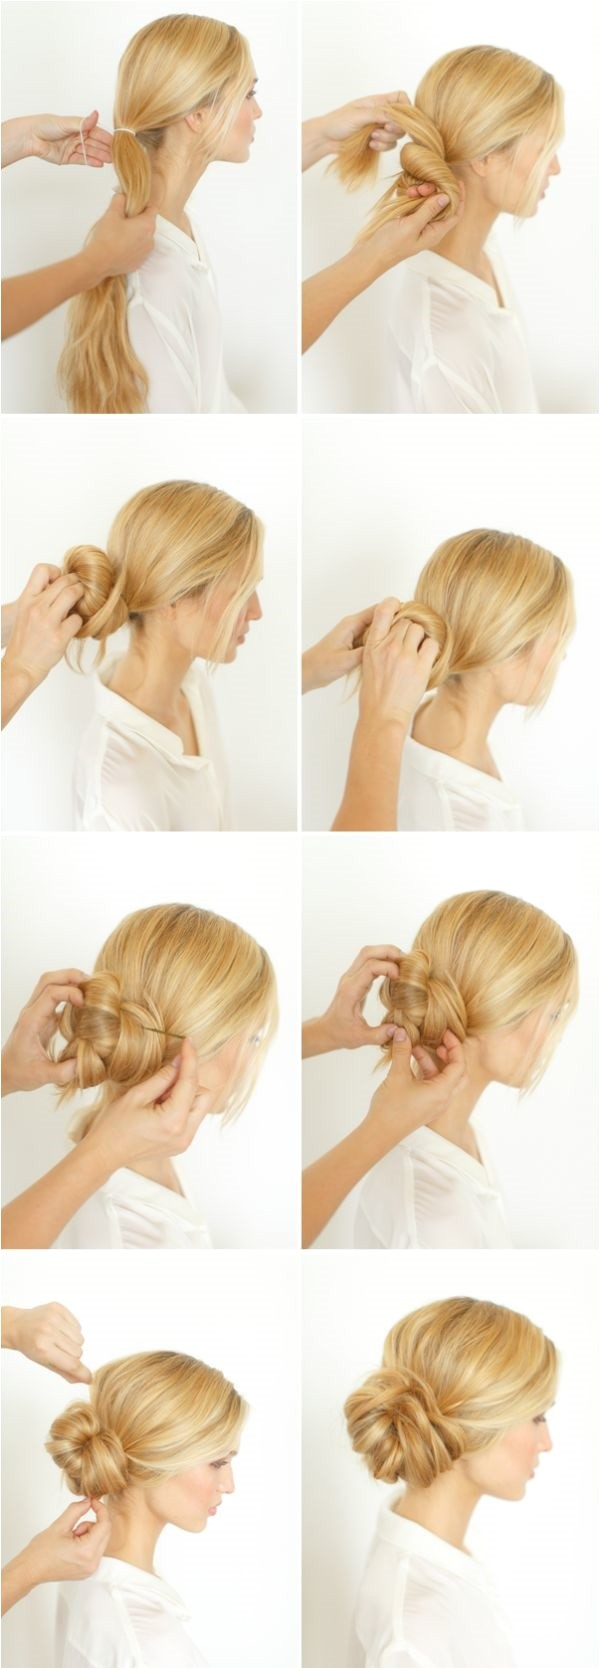 easy bun hairstyles for long hair and medium hair